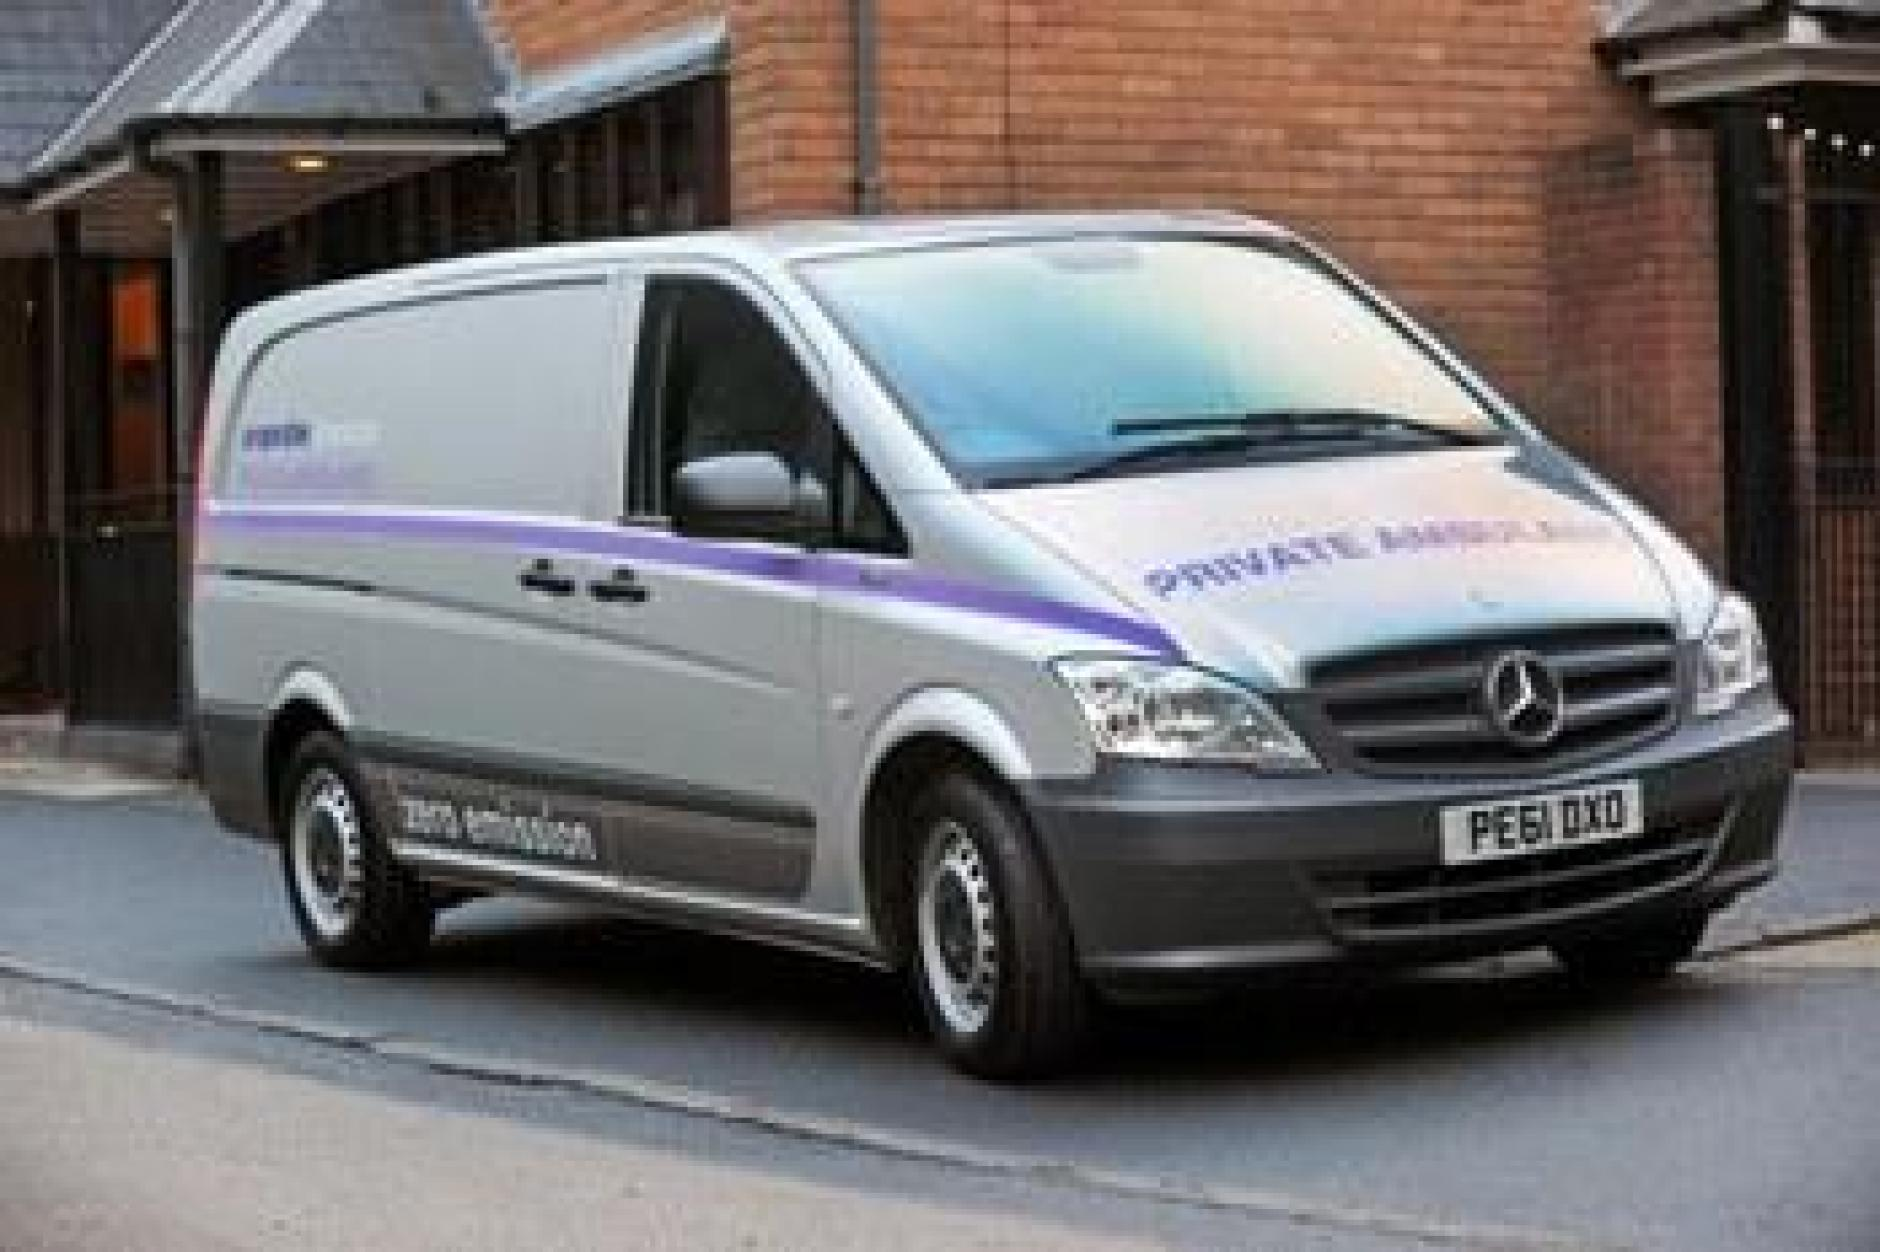 Funeral service operator becomes first uk customer for for Mercedes benz customer support